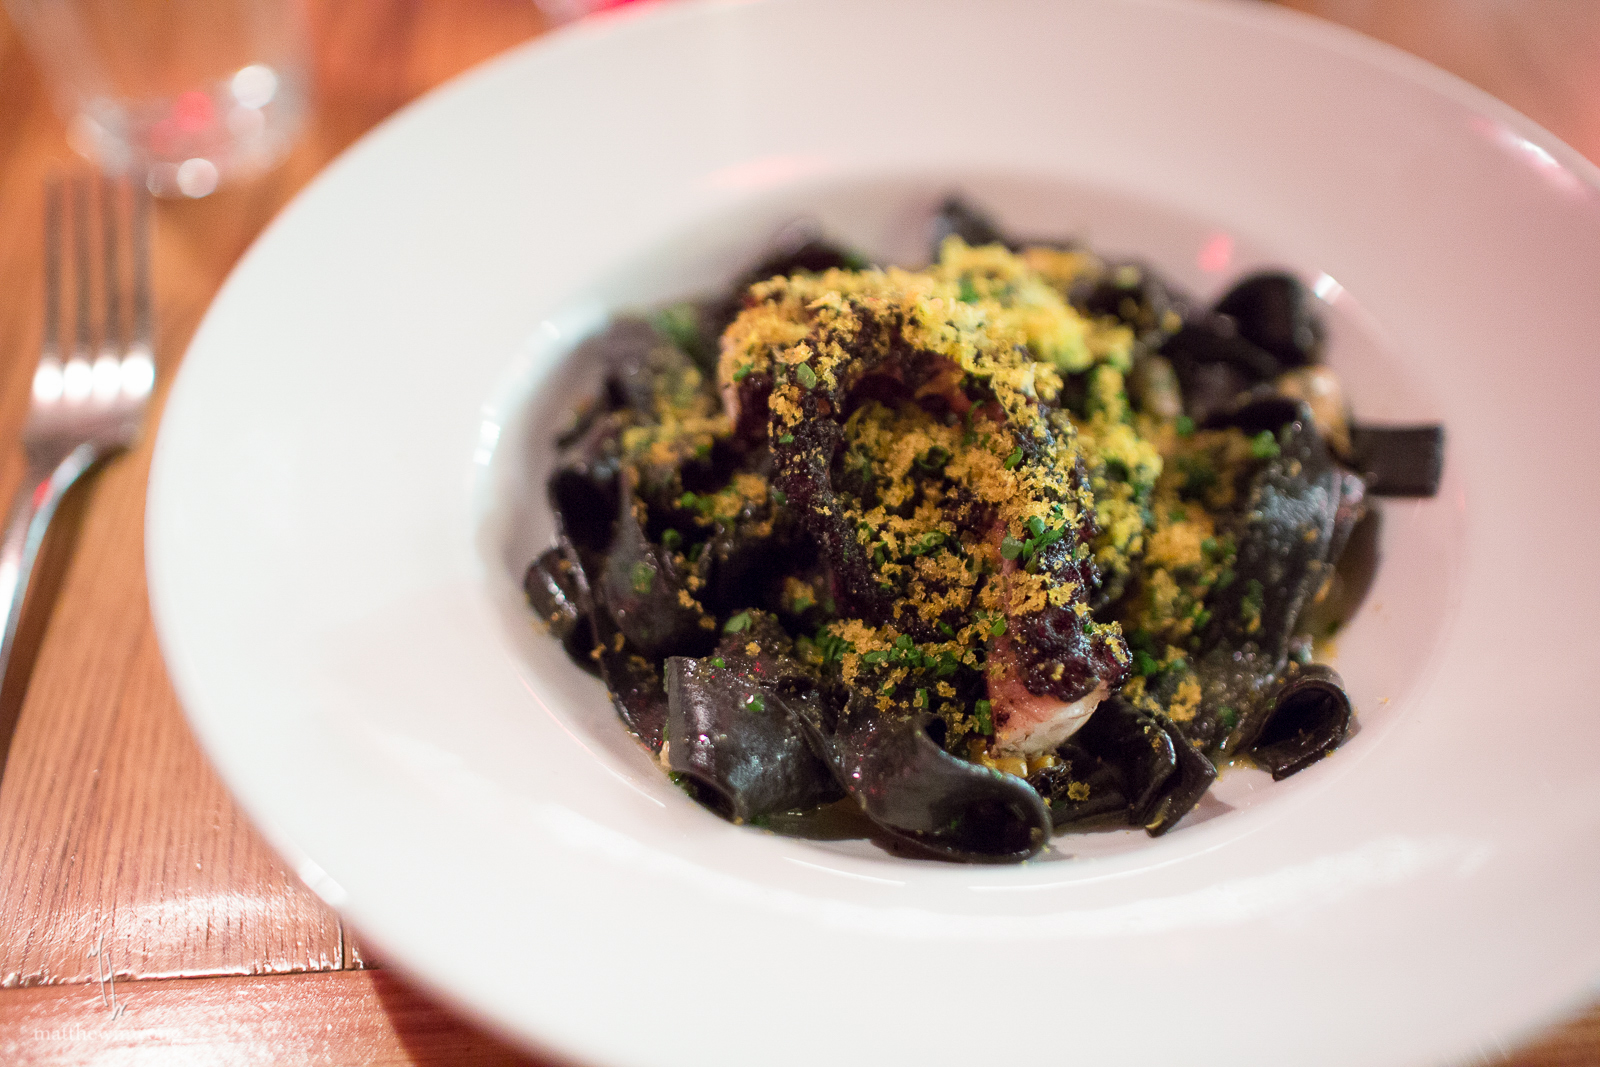 Squid Ink fettuccine, octopus, mussels, lemon, parsley, bottarga